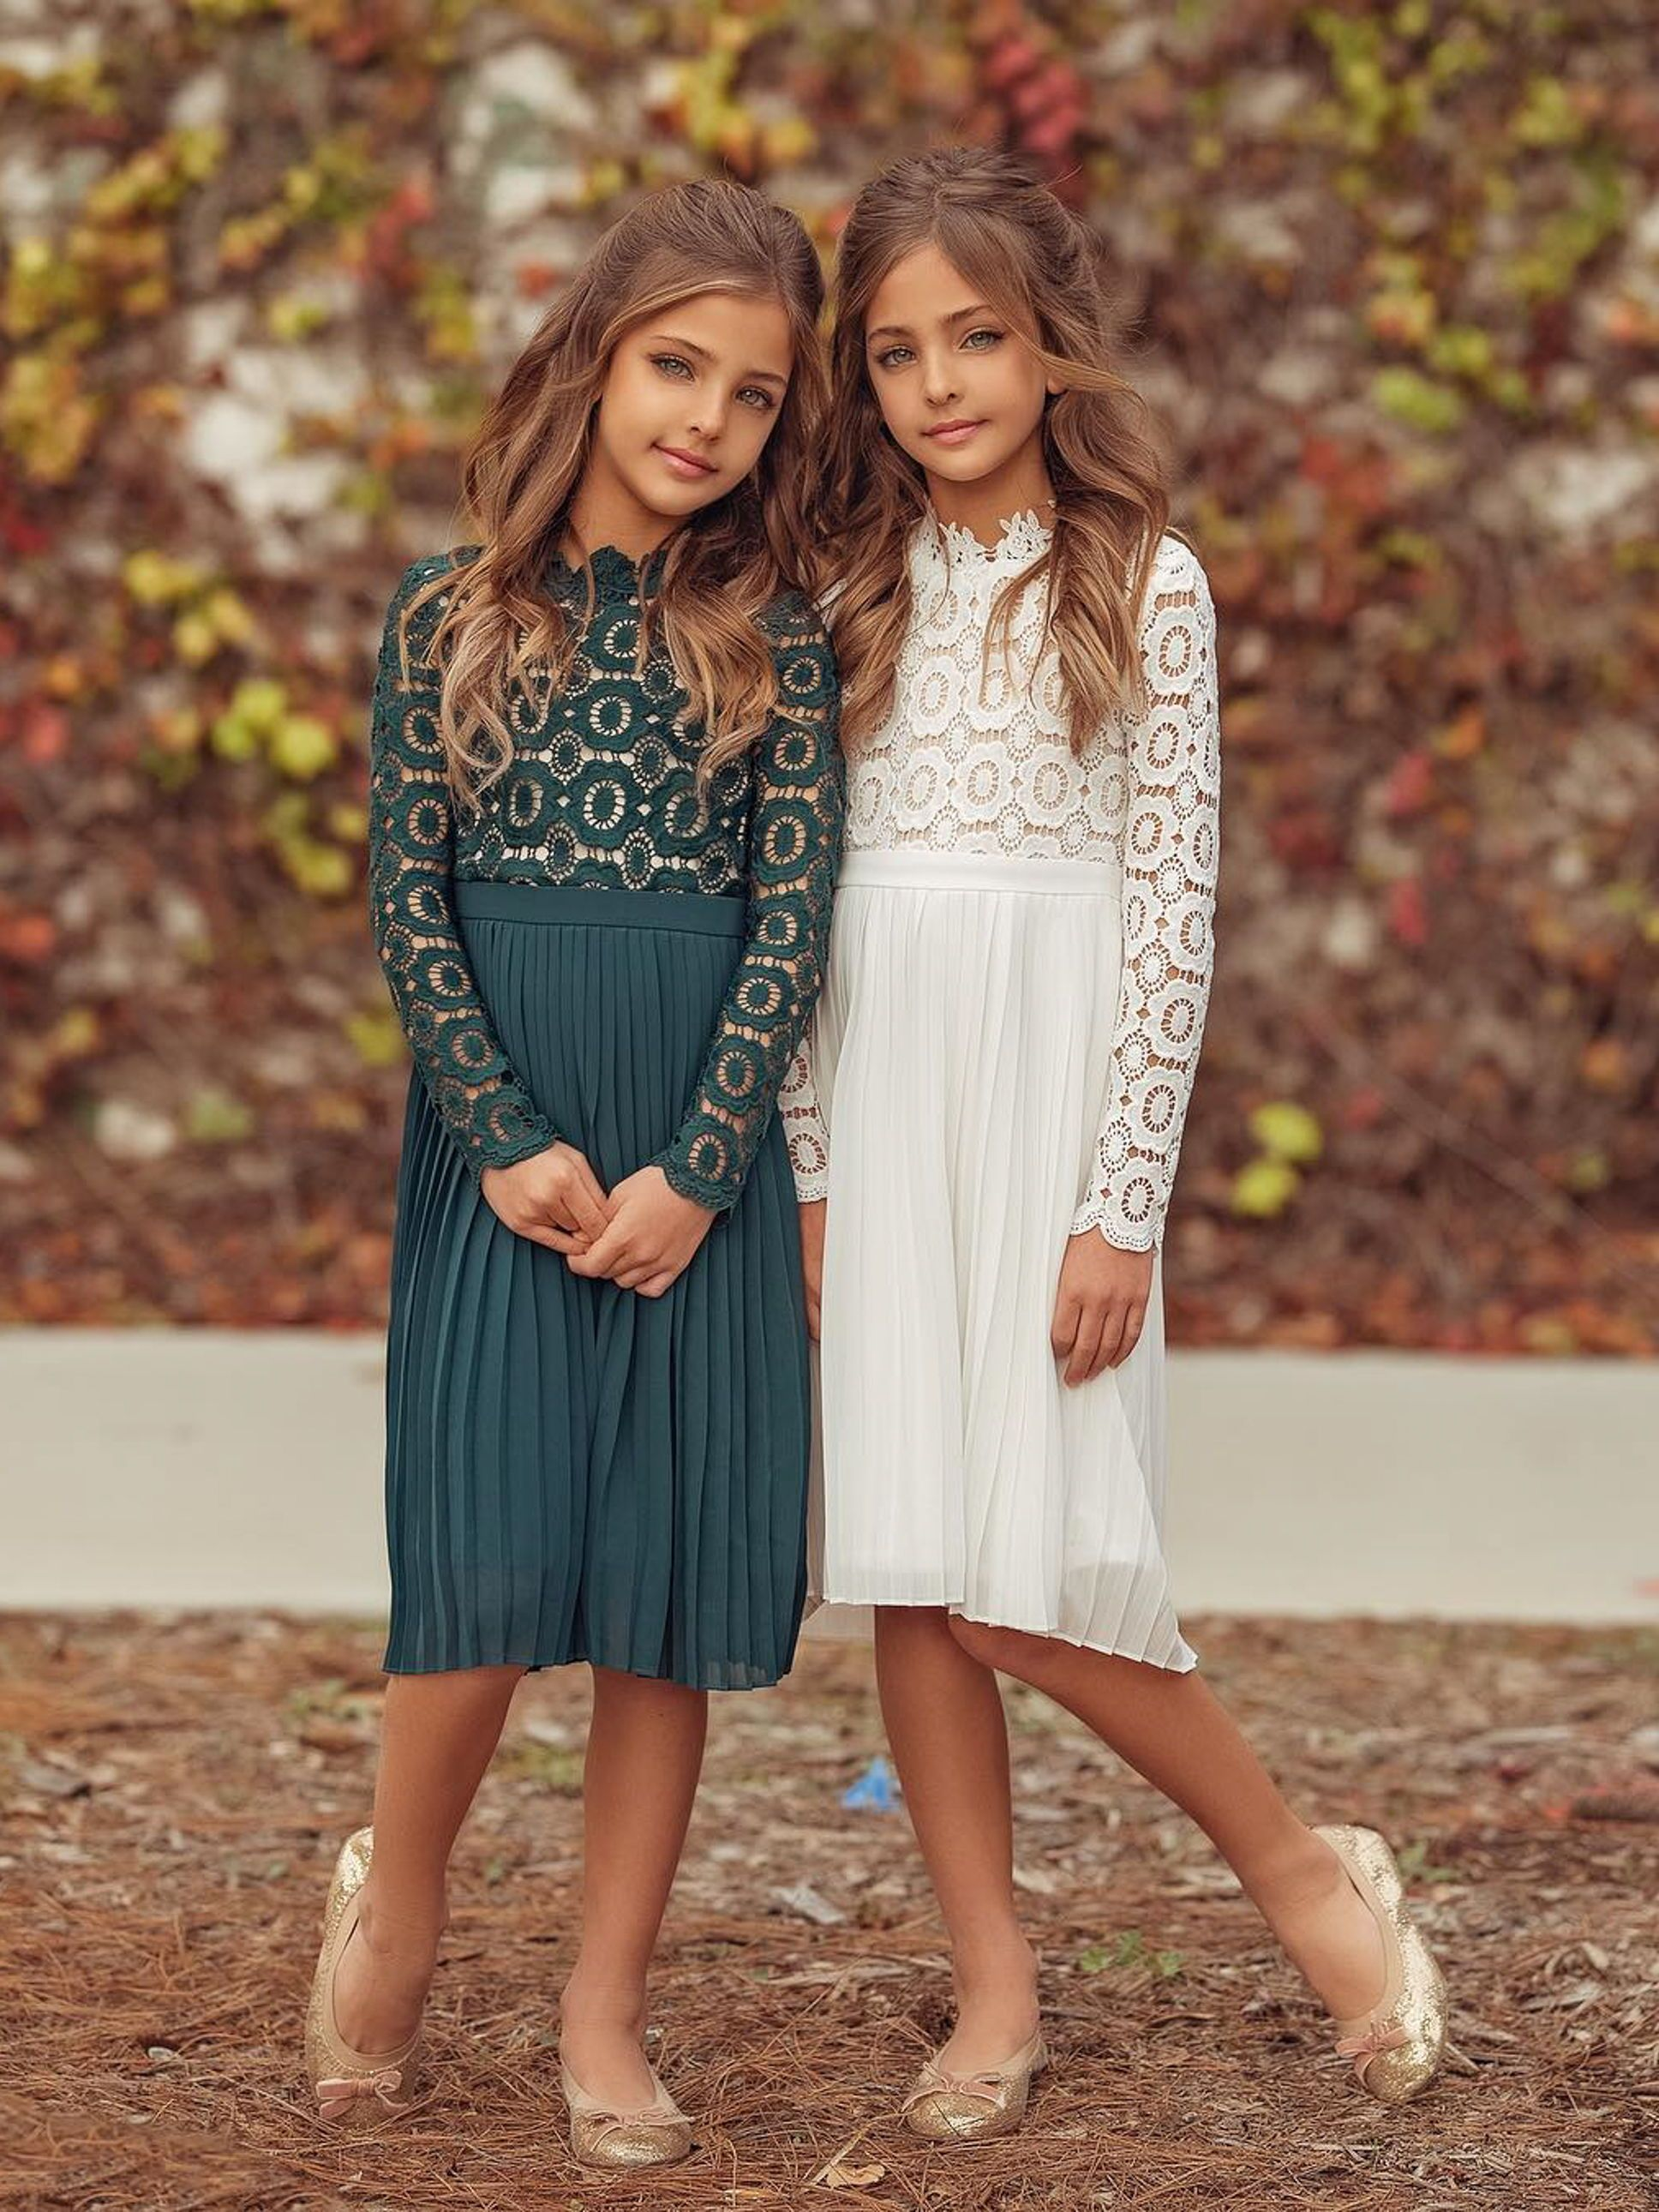 Modest Dresses For Girls Pre Teens And Teens Long Sleeve Lace Dress In White Iand Green By Ivy City Co Clement Twin Modest Dresses Girl Fashion Girls Dresses